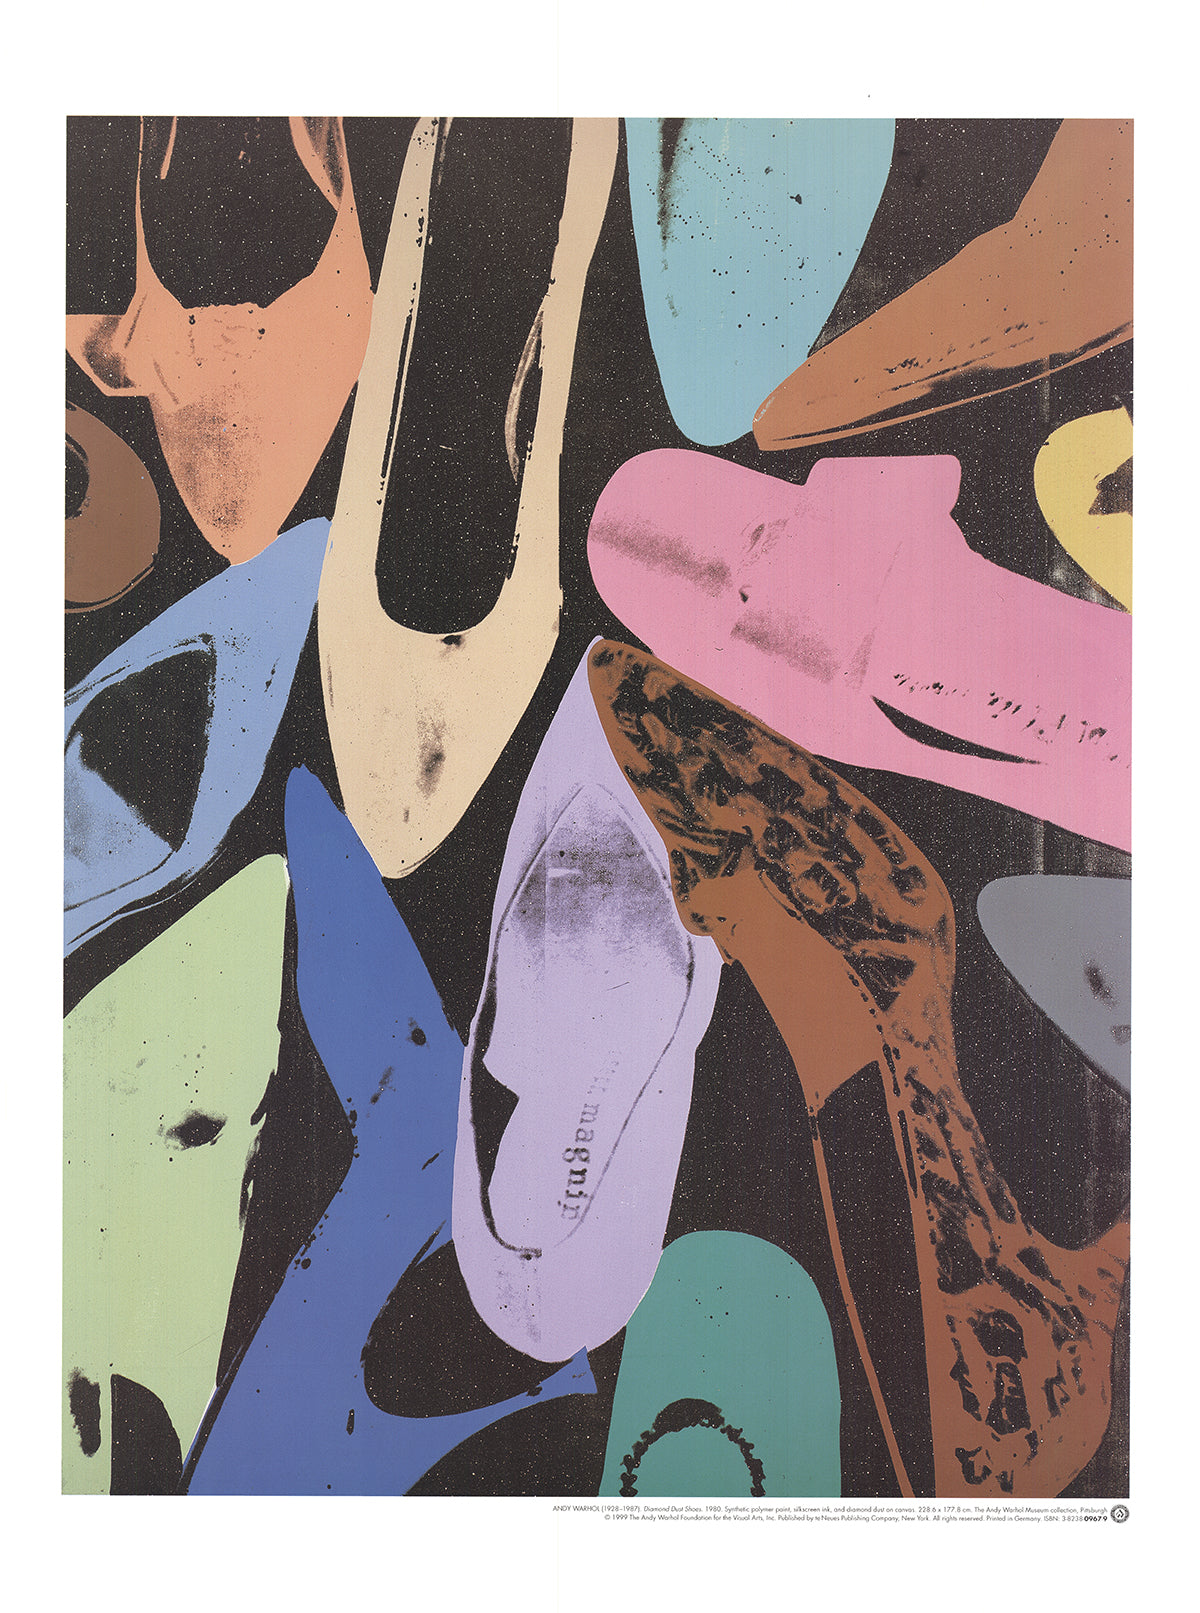 Andy Warhol-Diamond Dust Shoes-1999 Poster